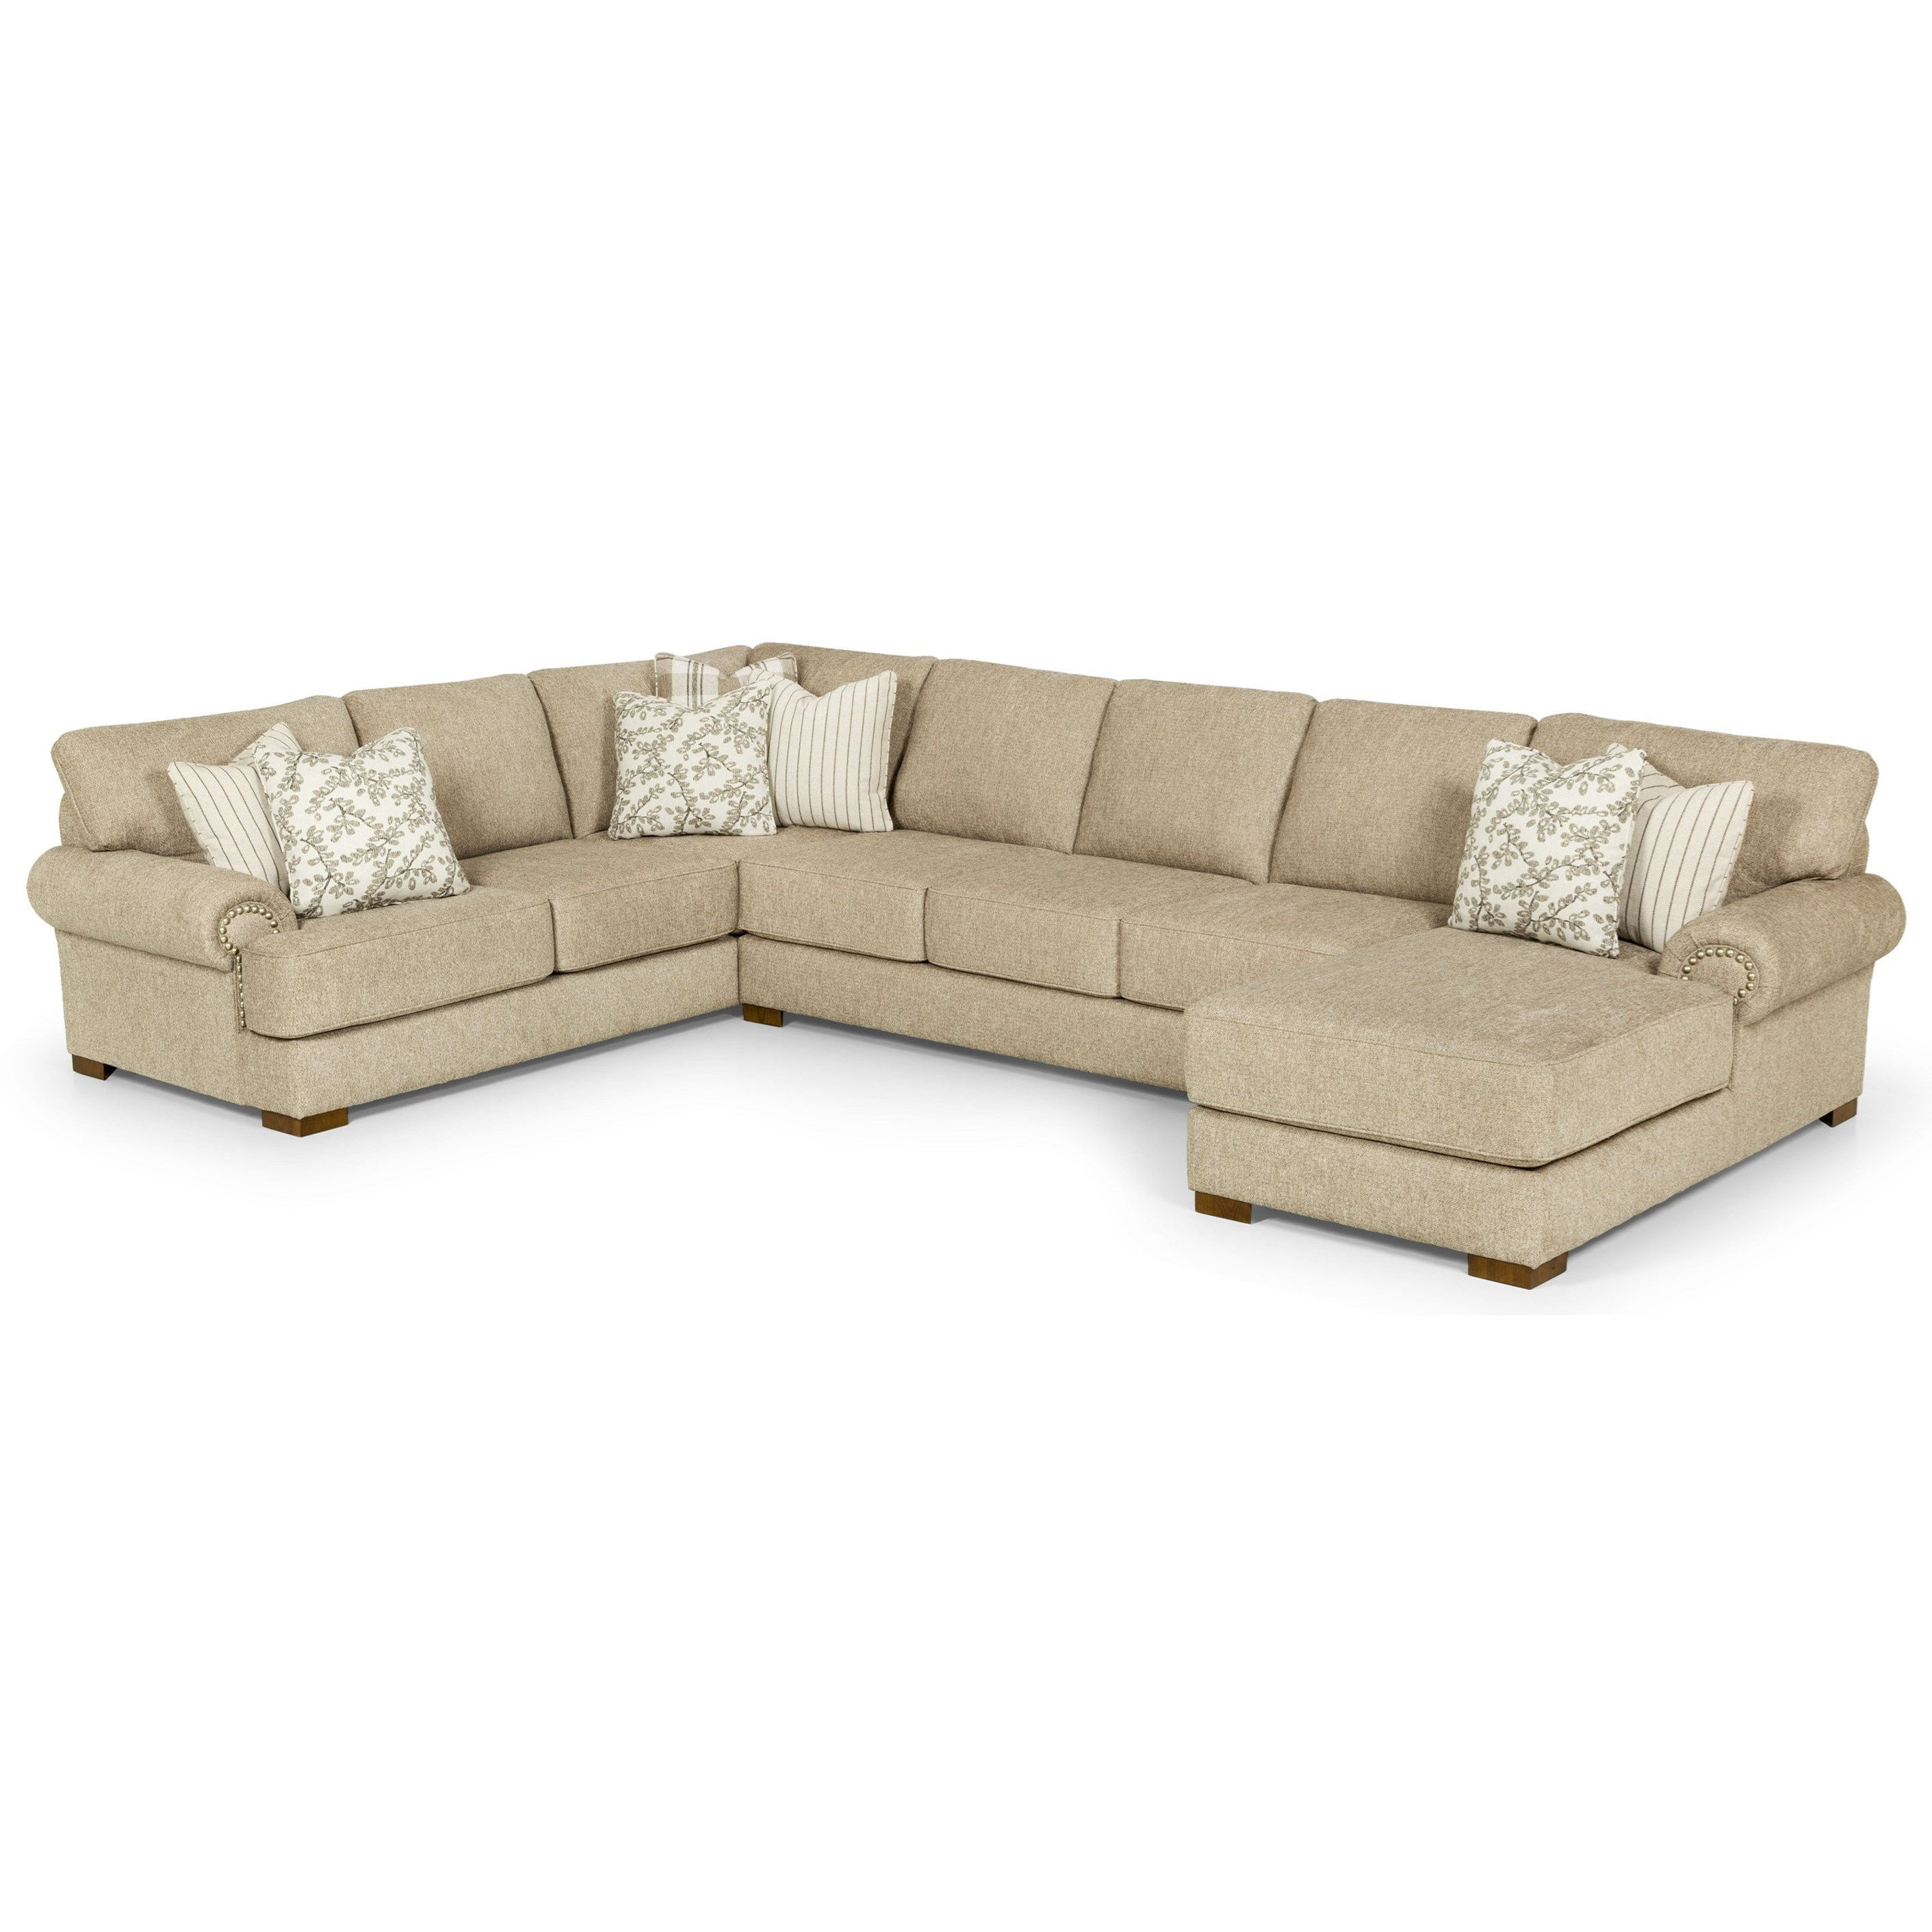 290 6-Seat Sectional Sofa w/ RAF Chaise by Stanton at Wilson's Furniture